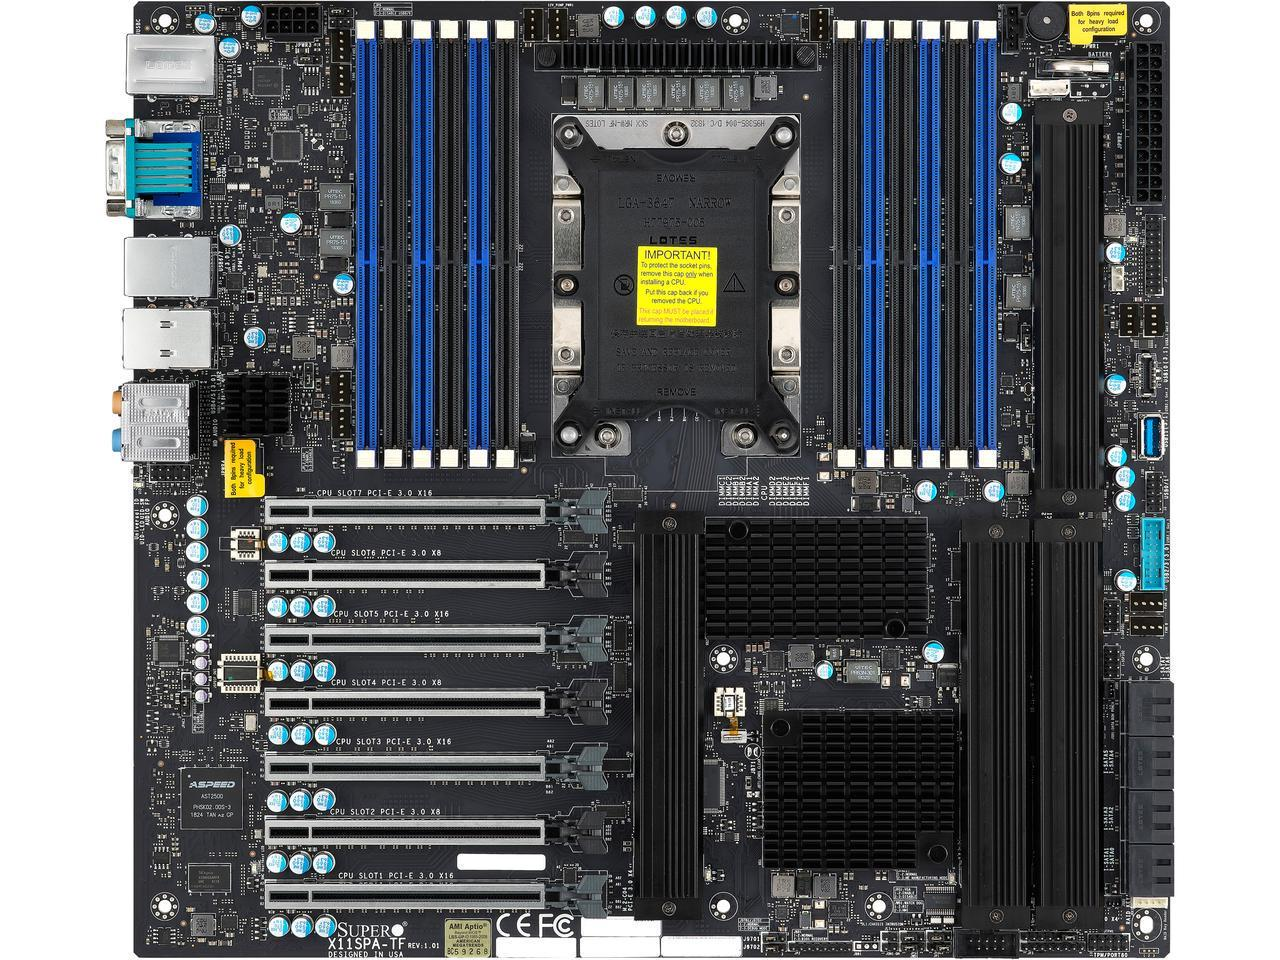 Supermicro X11SPA-TF Socket LGA 3647 Intel C621 SATA 6Gb/s Extended ATX Intel Server Motherboard